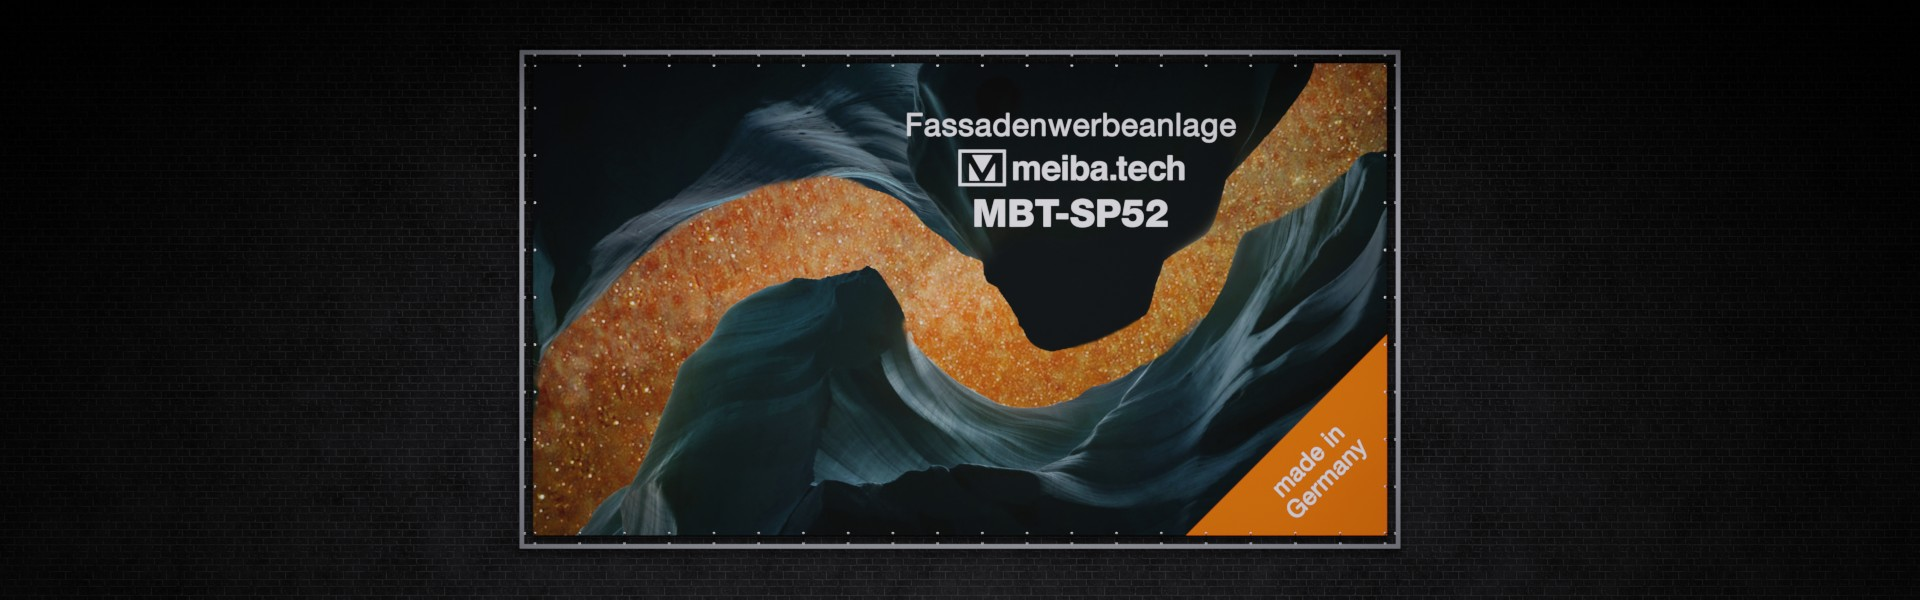 MBT-SP52: Modular advertising system for the attachment of facade advertising, front view